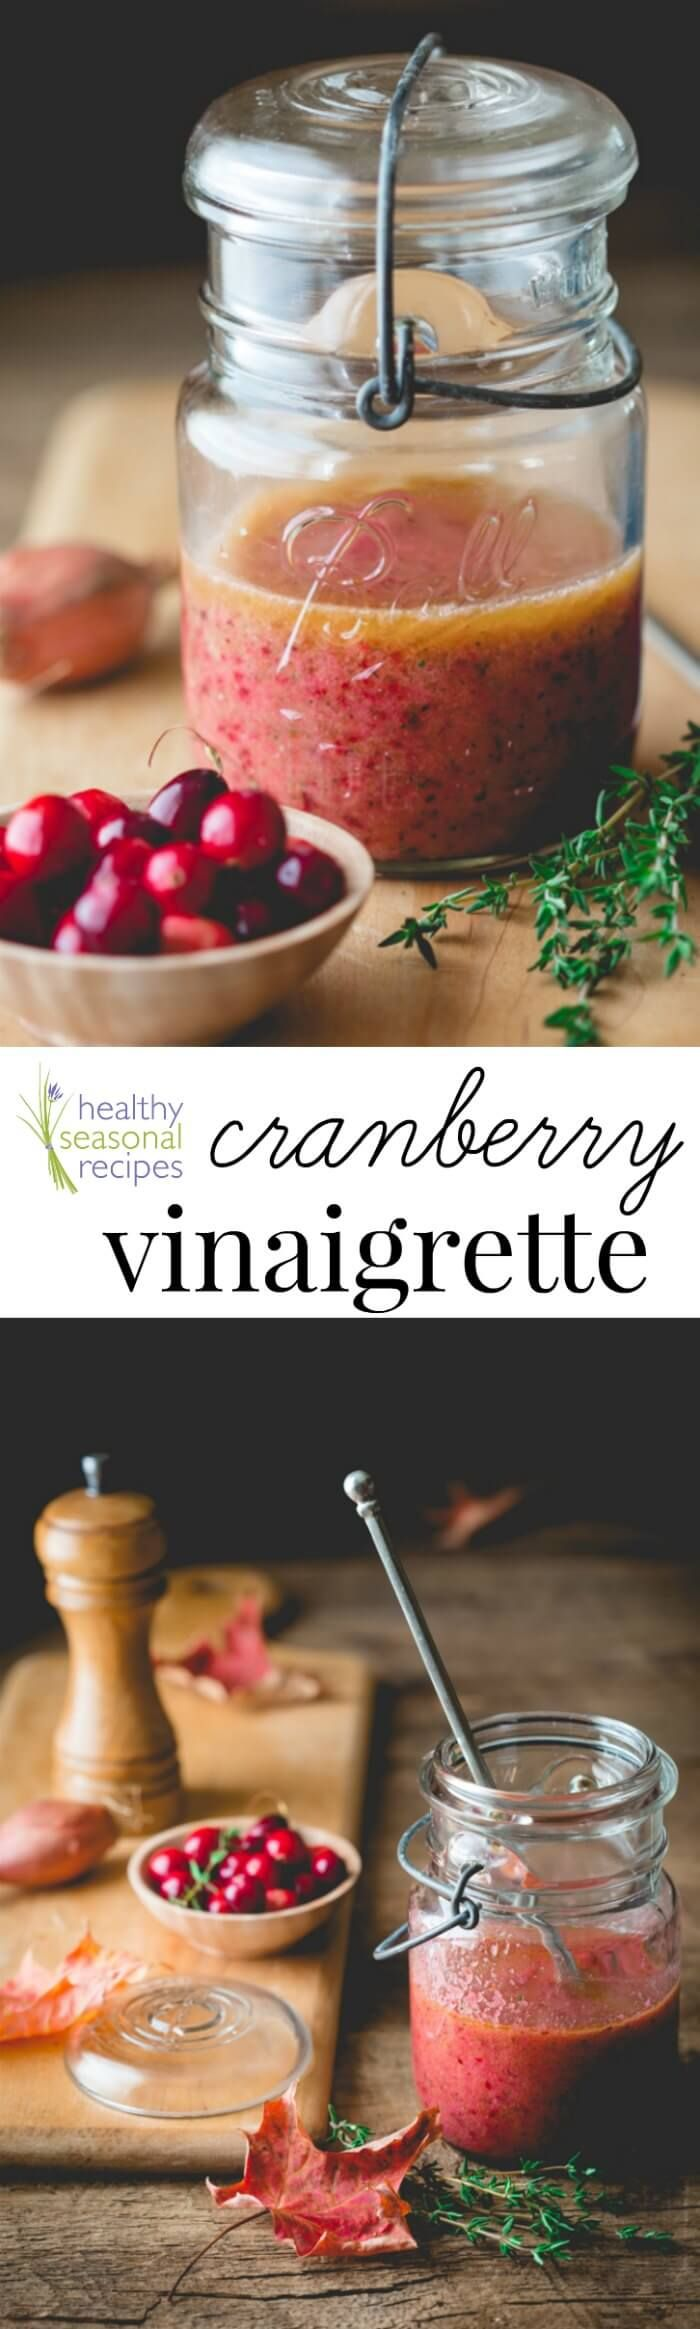 Don't be victim to boring salads, arm yourself with this autumn work of art -- homemade cranberry vinaigrette can transform any greens (plus it's vegan-friendly, paleo and gluten-free).